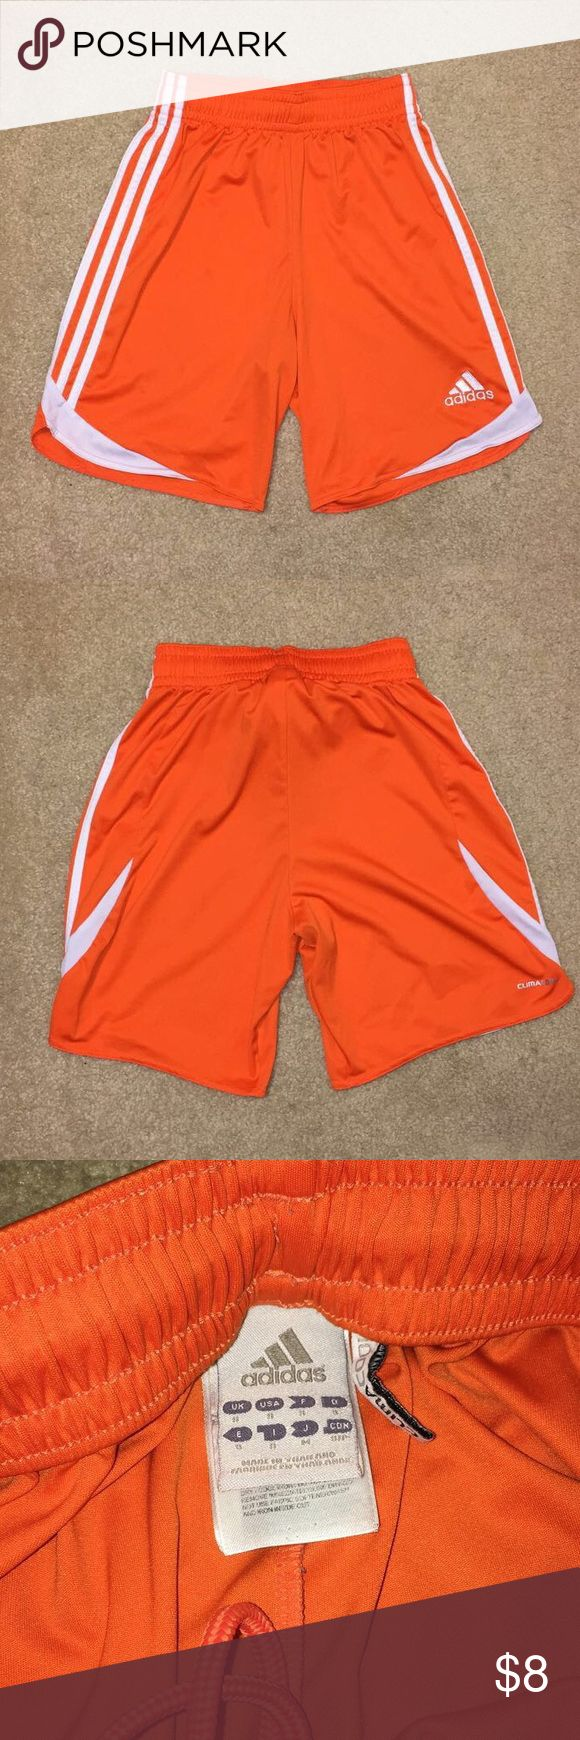 Orange Adidas Soccer shorts Soccer shorts from adidas, orange in color, size small. Two small spots on shorts as pictured, honestly not very noticeable in person. Open to offers :) adidas Shorts Athletic